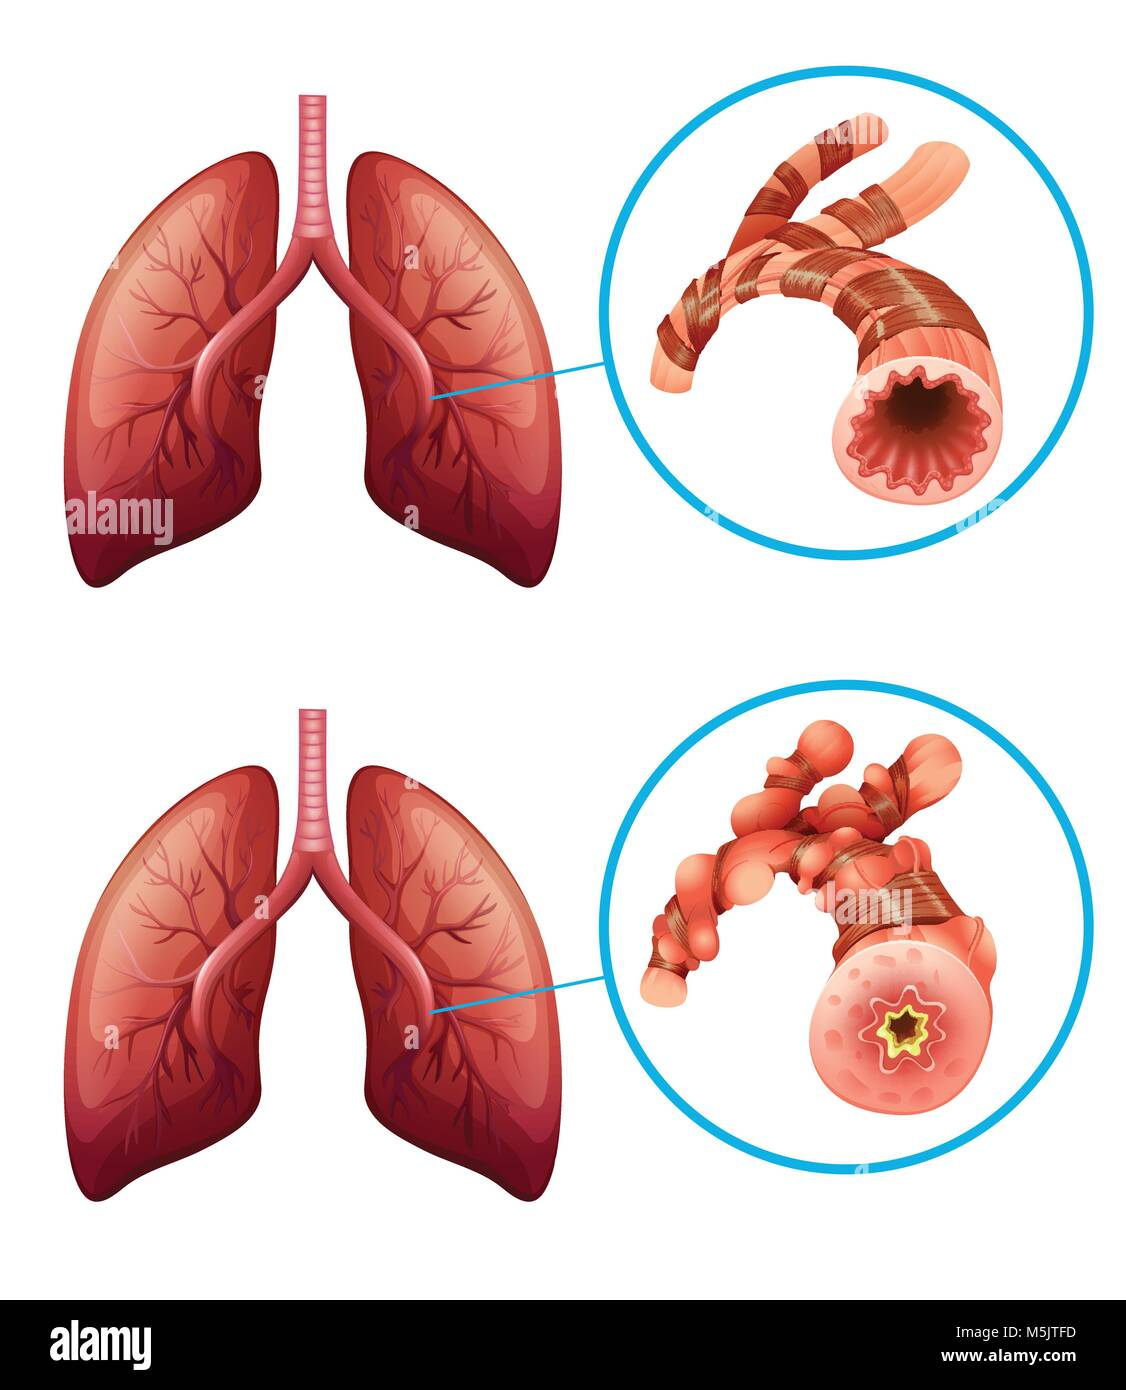 Diagram showing lungs with disease illustration stock vector art diagram showing lungs with disease illustration ccuart Images